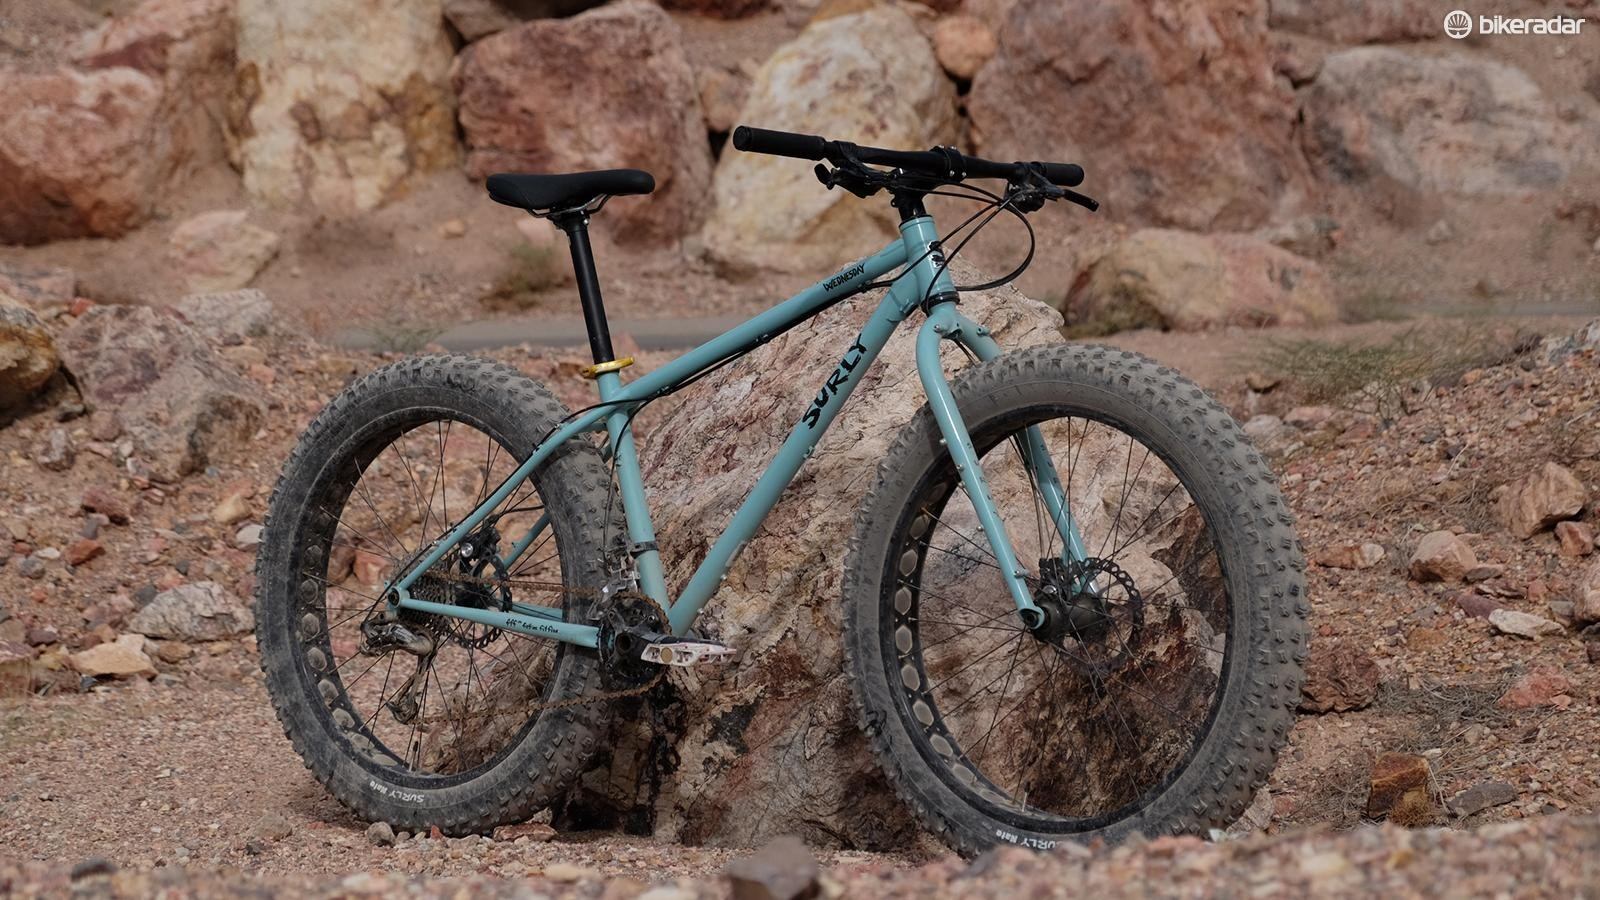 The Wednesday is Surly's fourth fat bike model